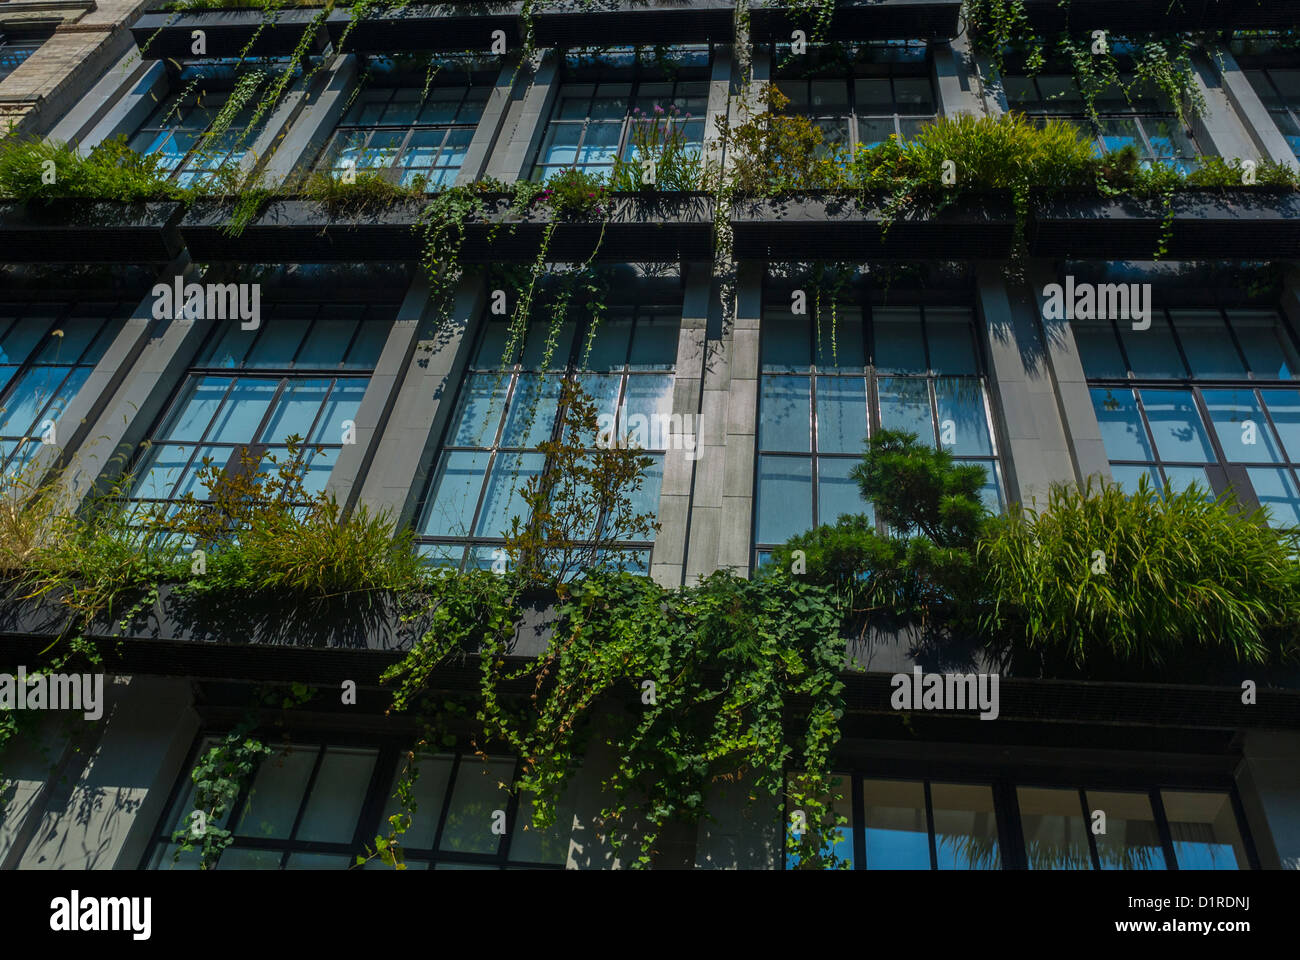 New York, NY, USA, Detail, Facade with Vertical Garden Plants, WIndows,  East Village Buildings (E. 6th St.)